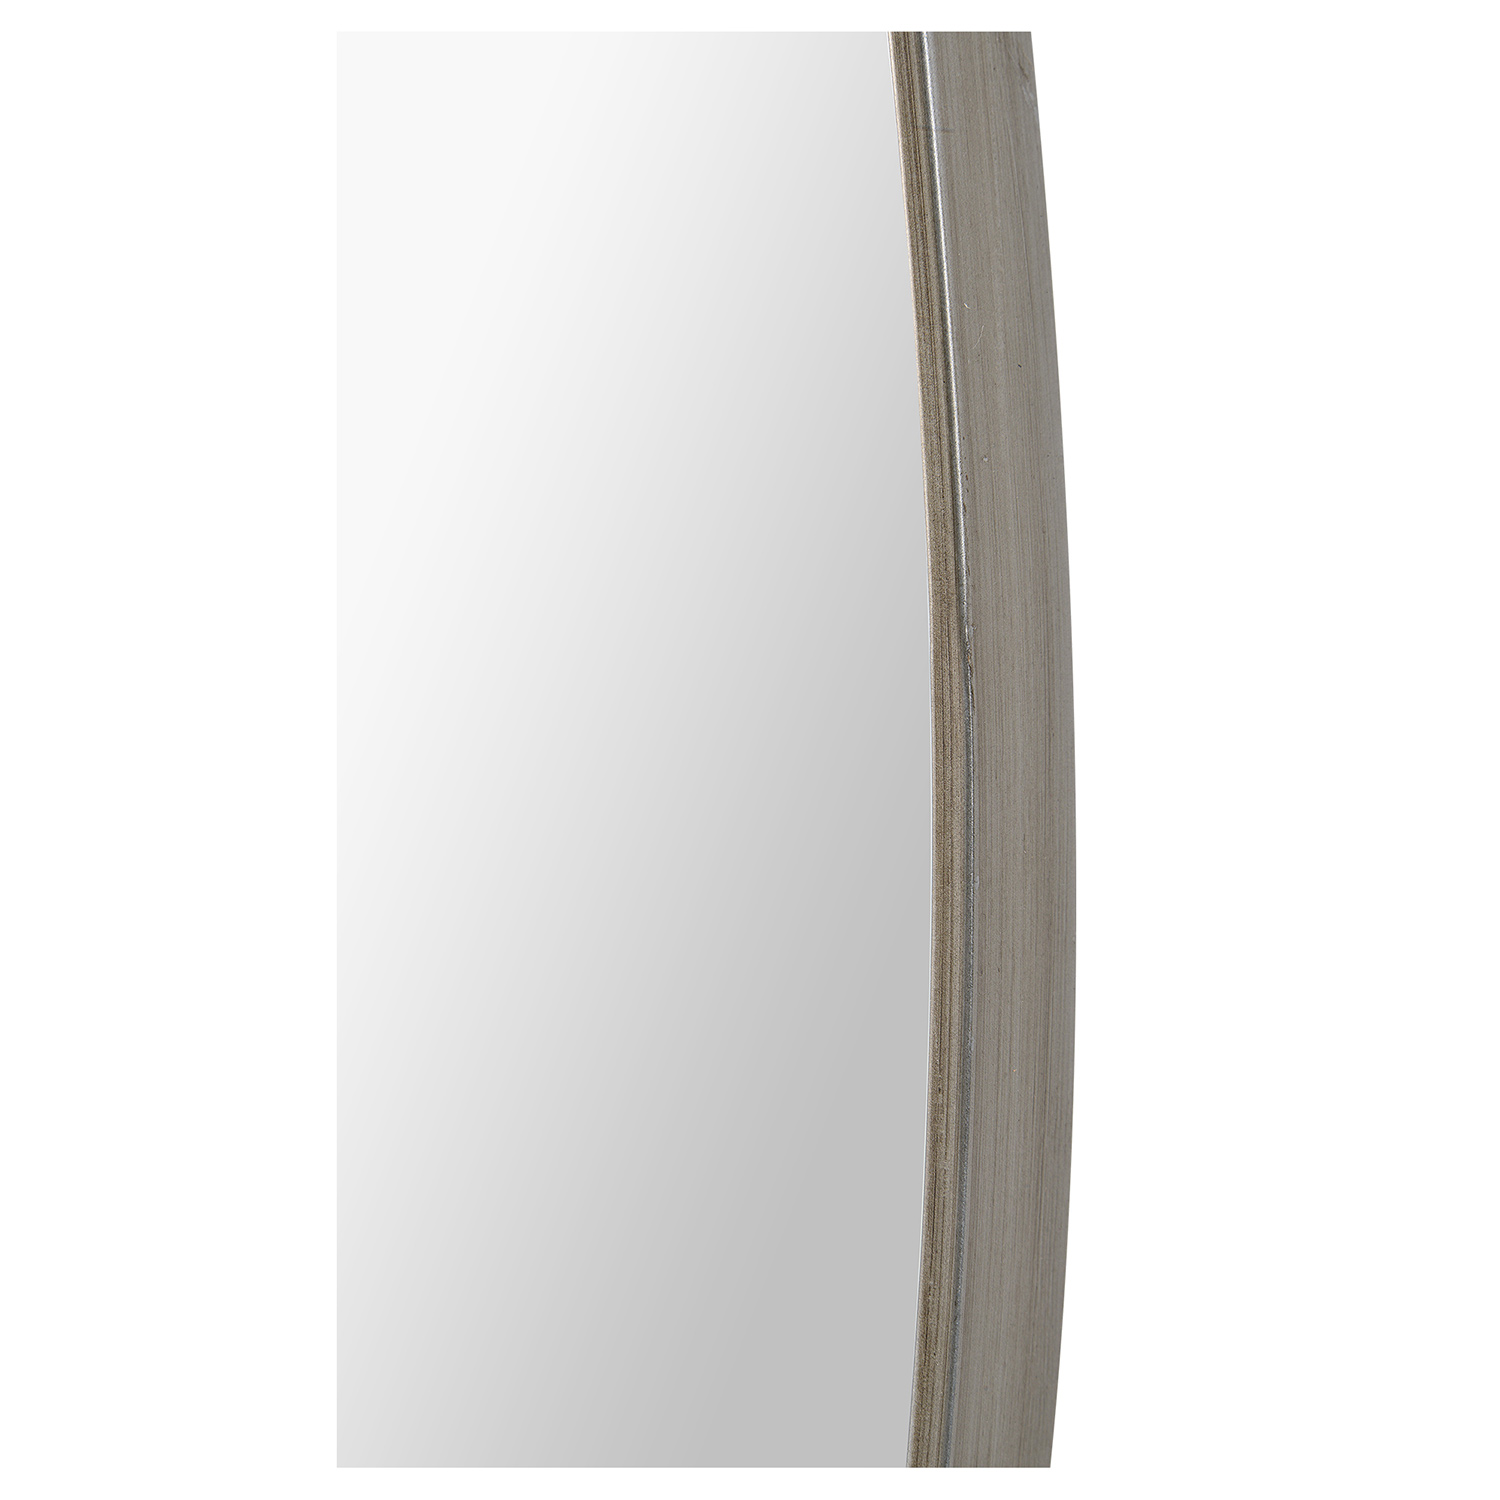 Ren-Wil Newport Oval Mirror - Antique Brushed Silver